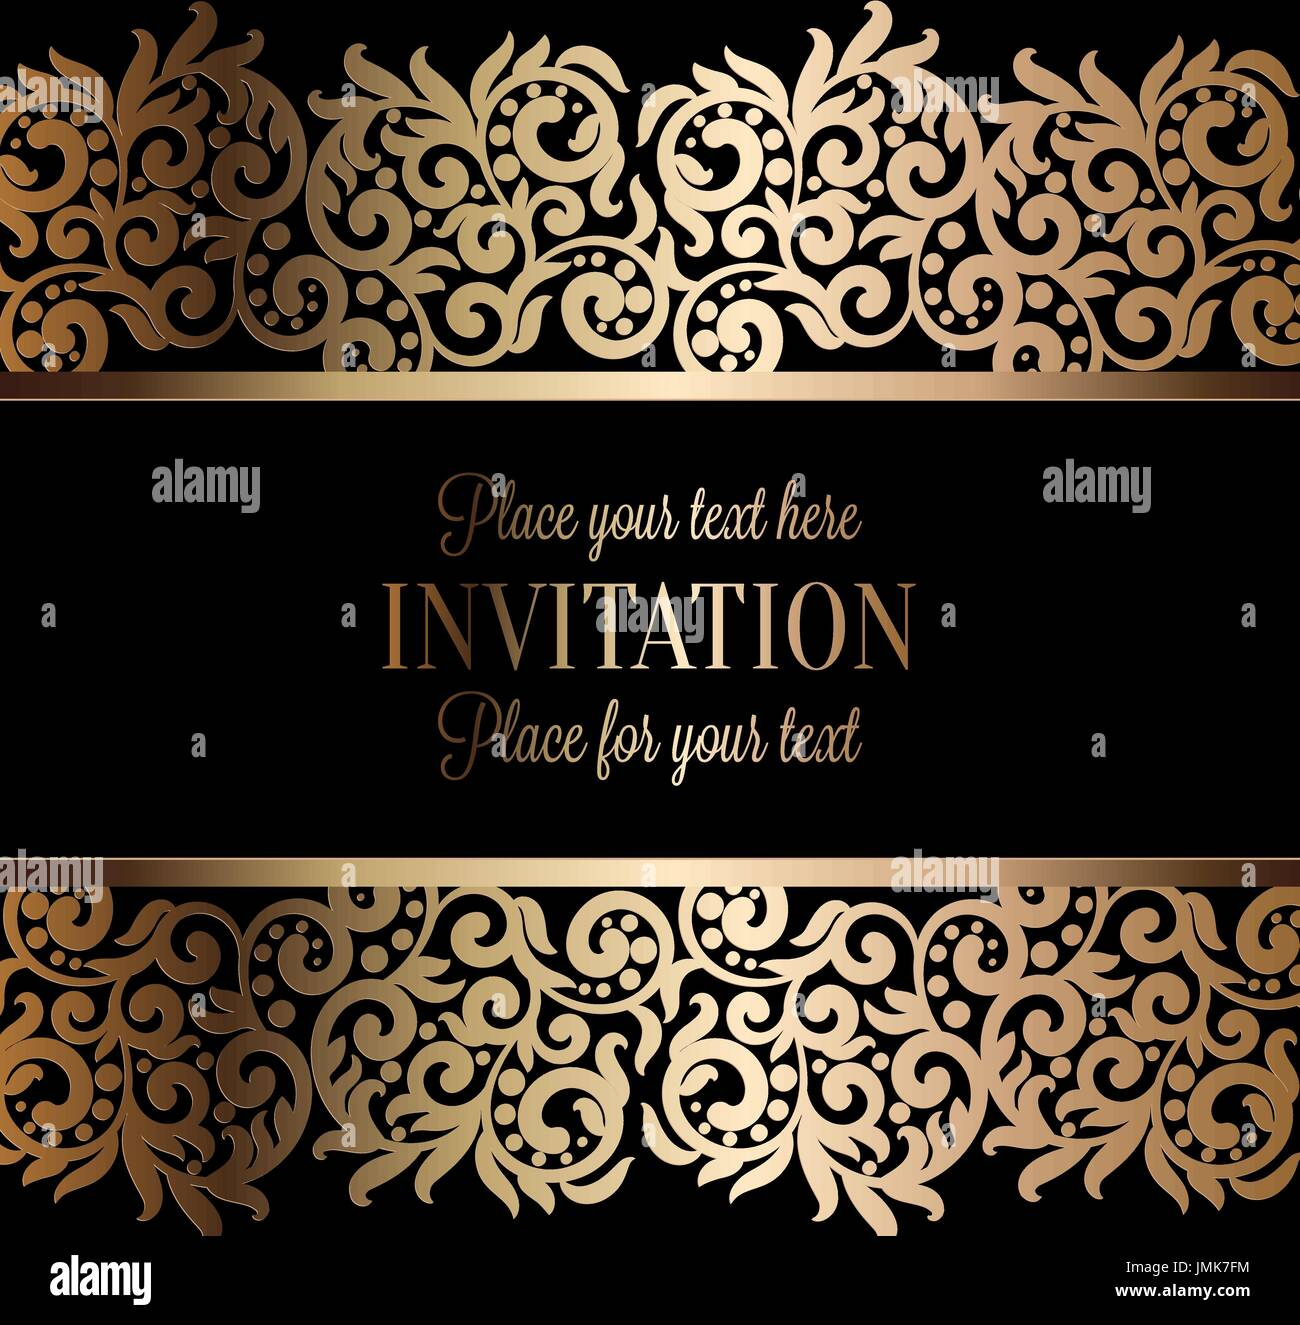 Antique baroque luxury wedding invitation gold on black background antique baroque luxury wedding invitation gold on black background with frame and place for text lacy foliage with shiny gradient stopboris Gallery